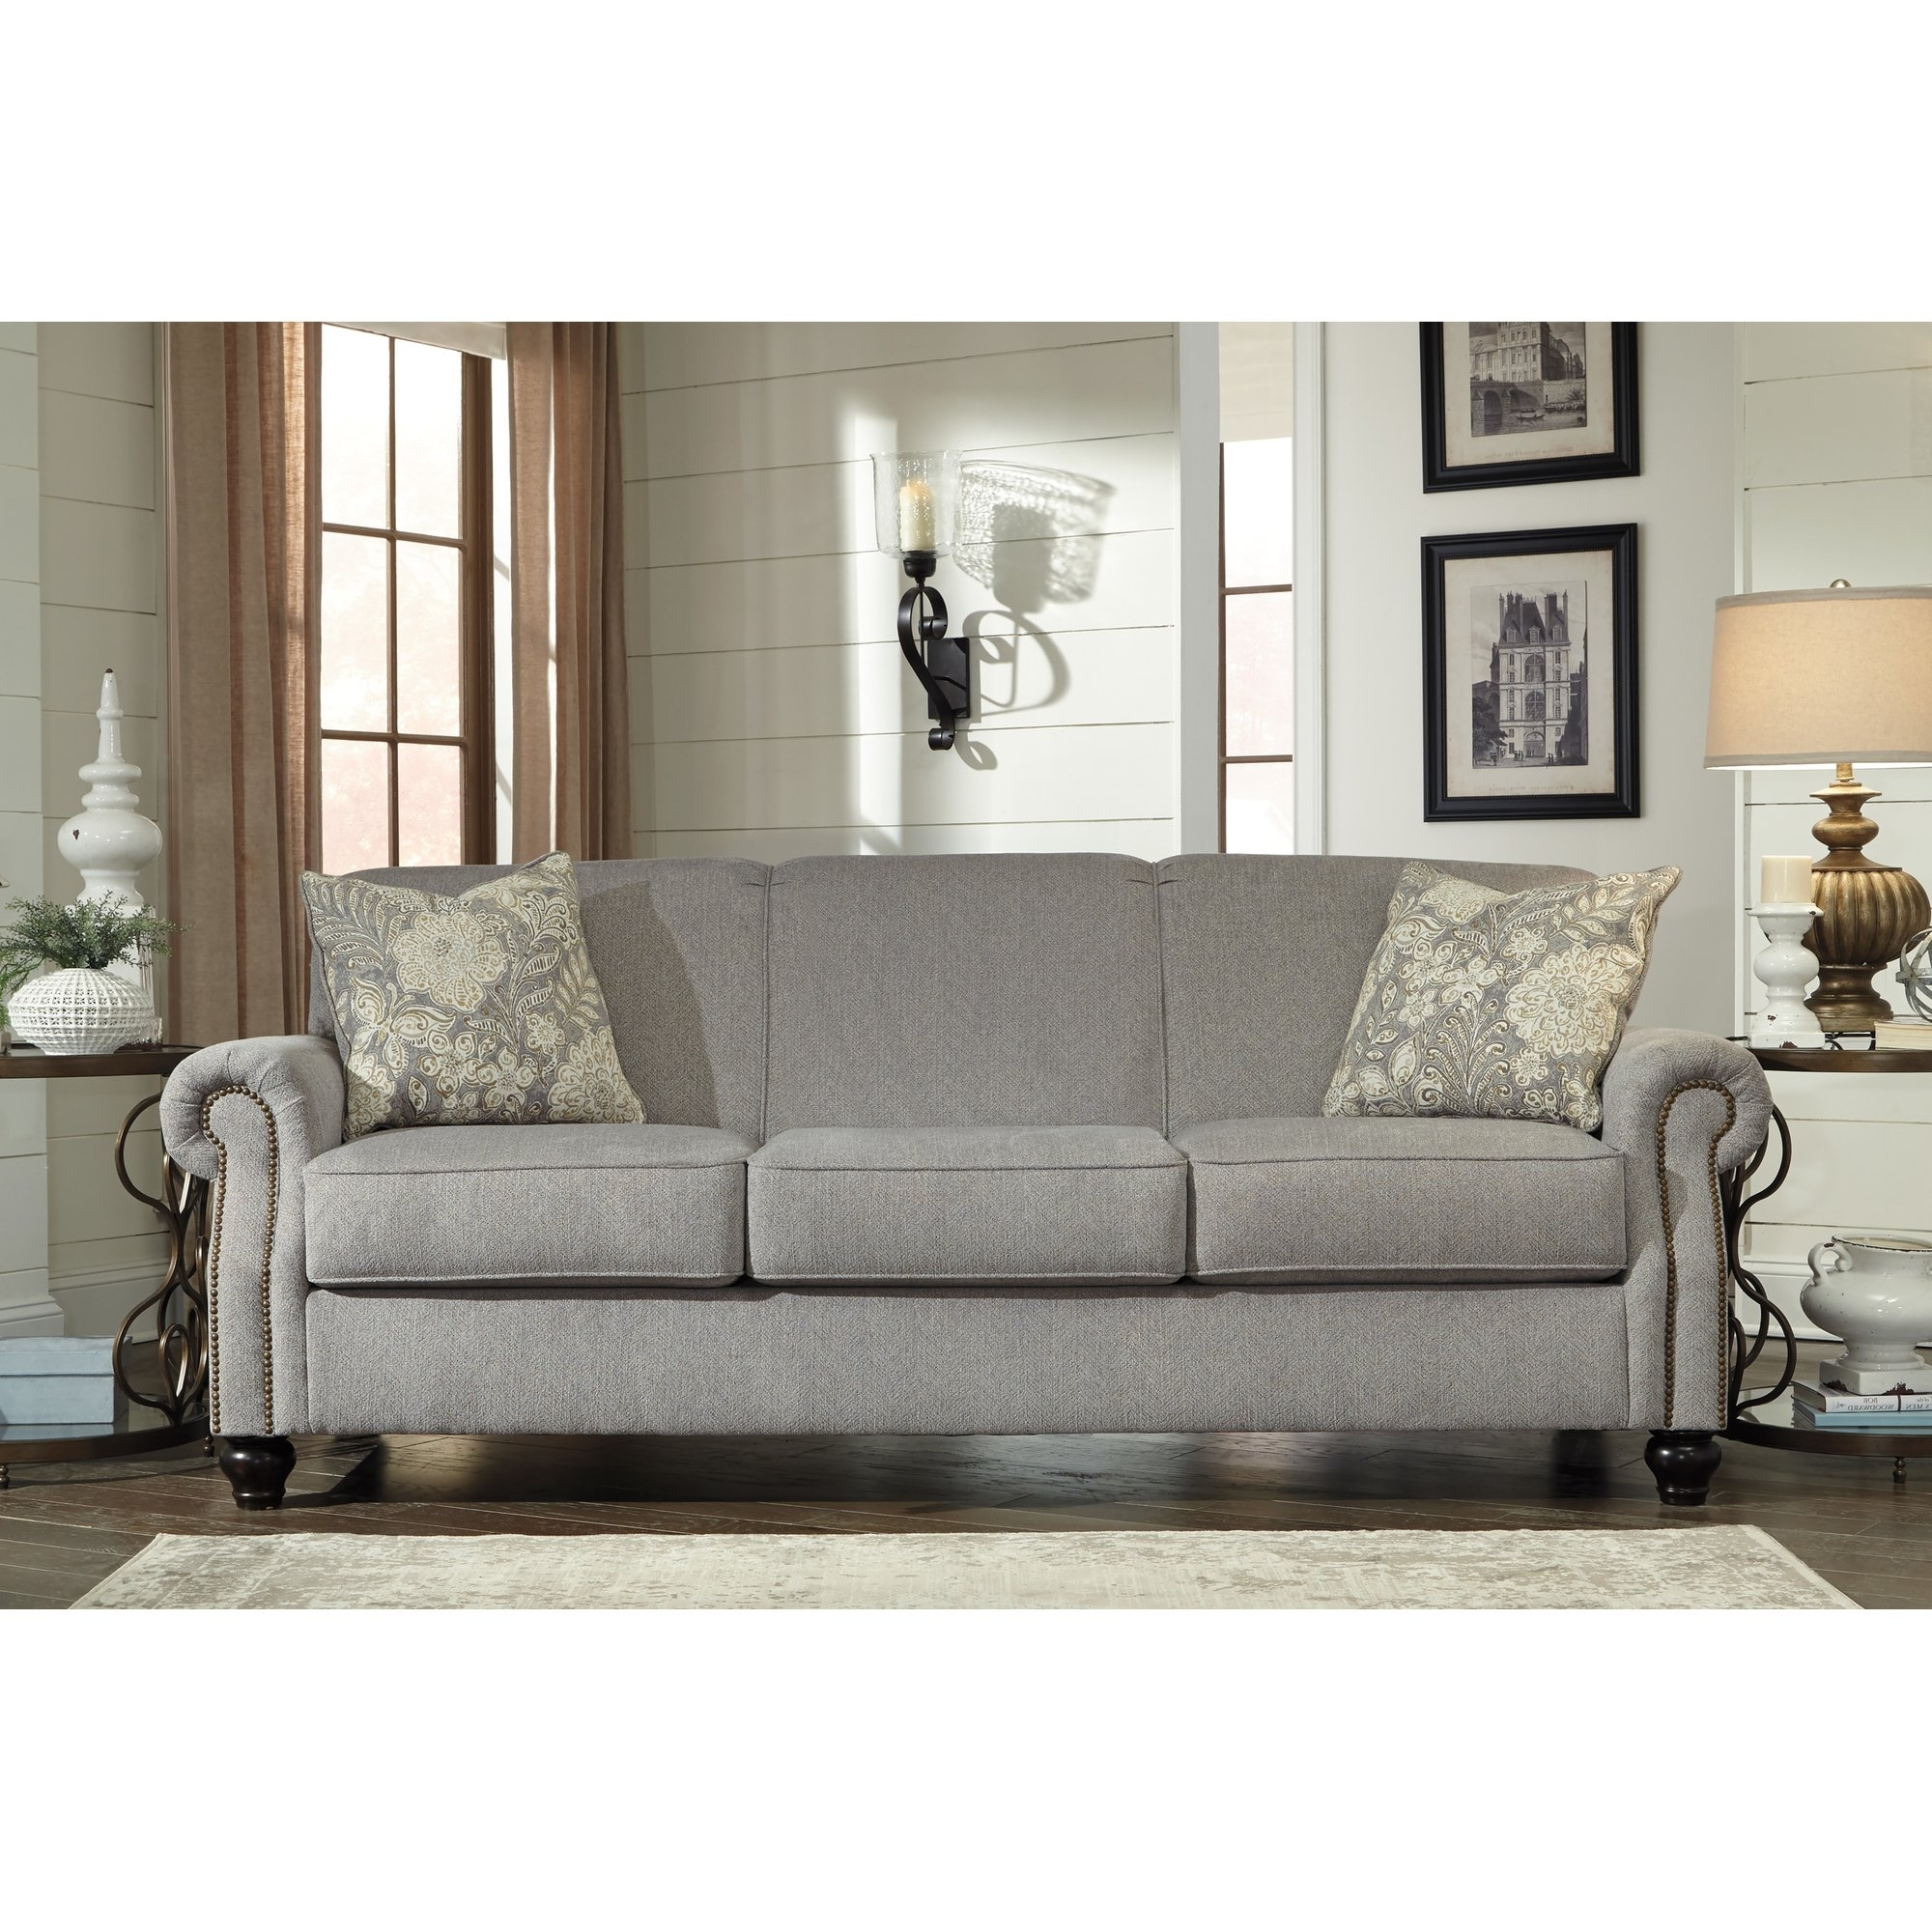 Popular Traditional Sofas Throughout Sofa : Amazing Traditional Sofas On Sale Best Home Design Simple (View 10 of 20)